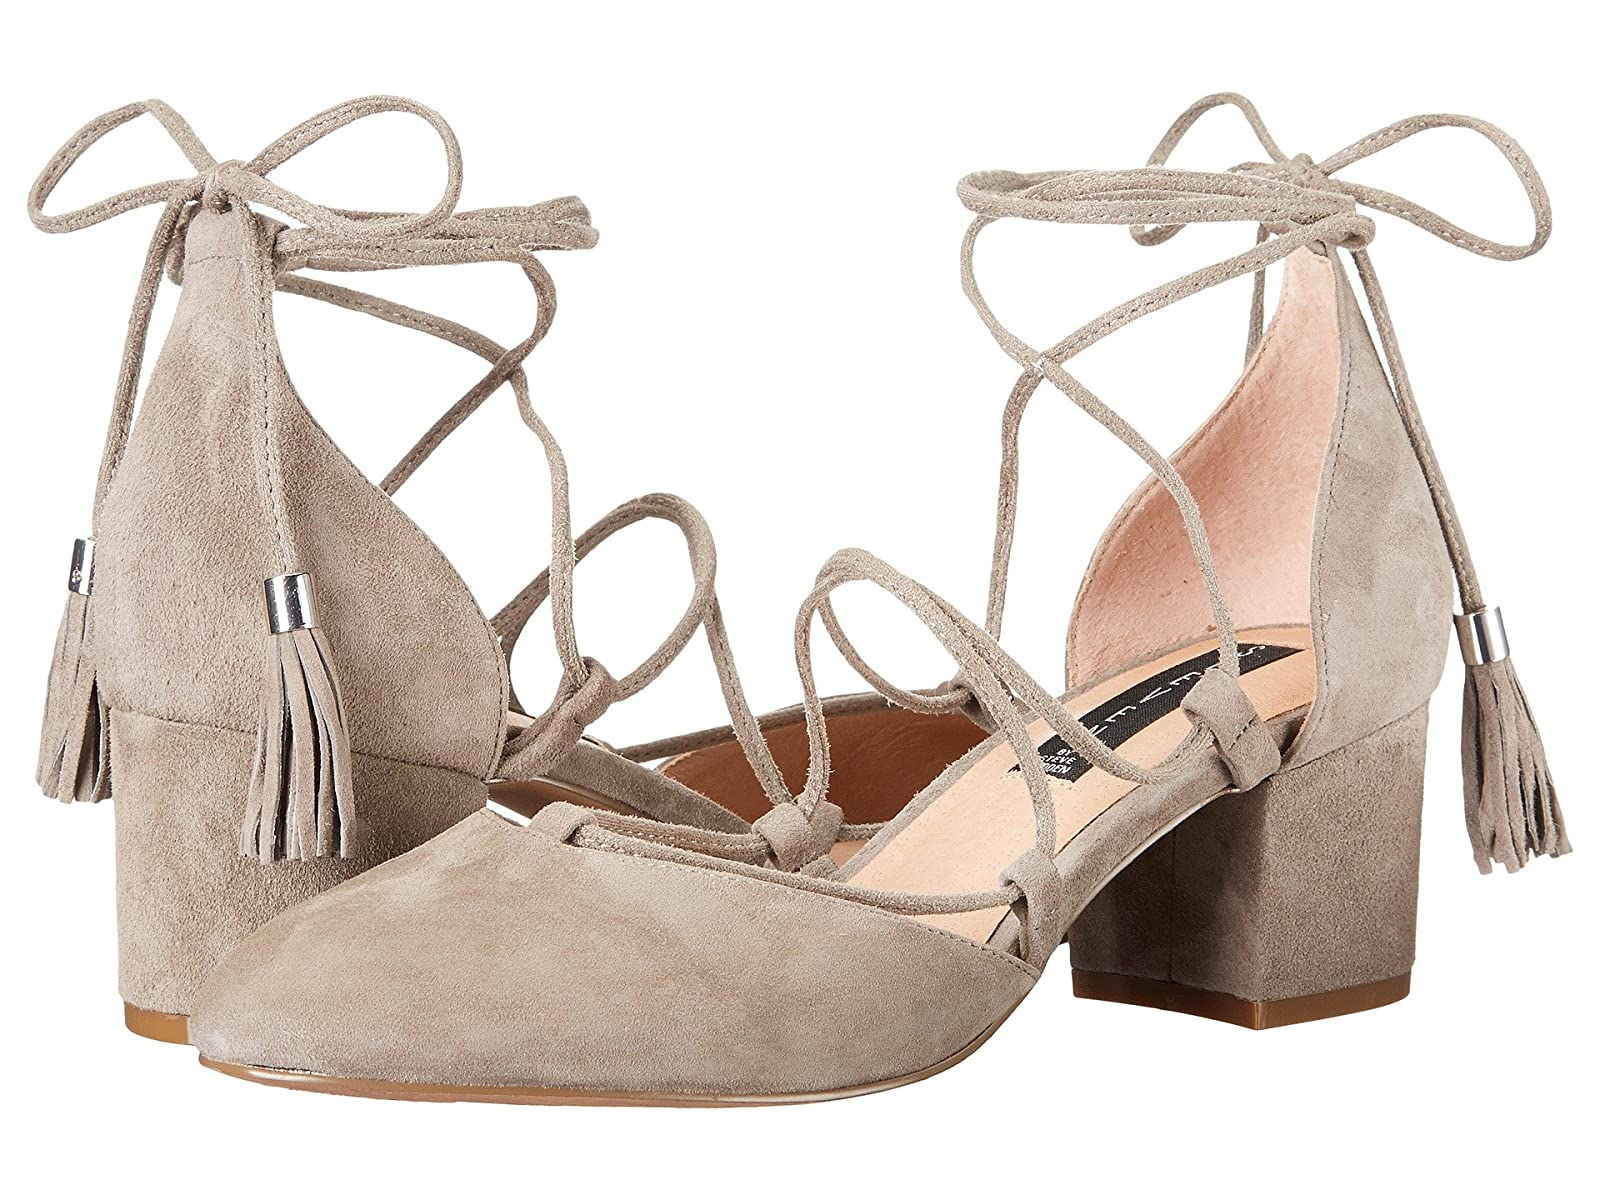 Steven ValoCheap and distinctive eye-catching shoes